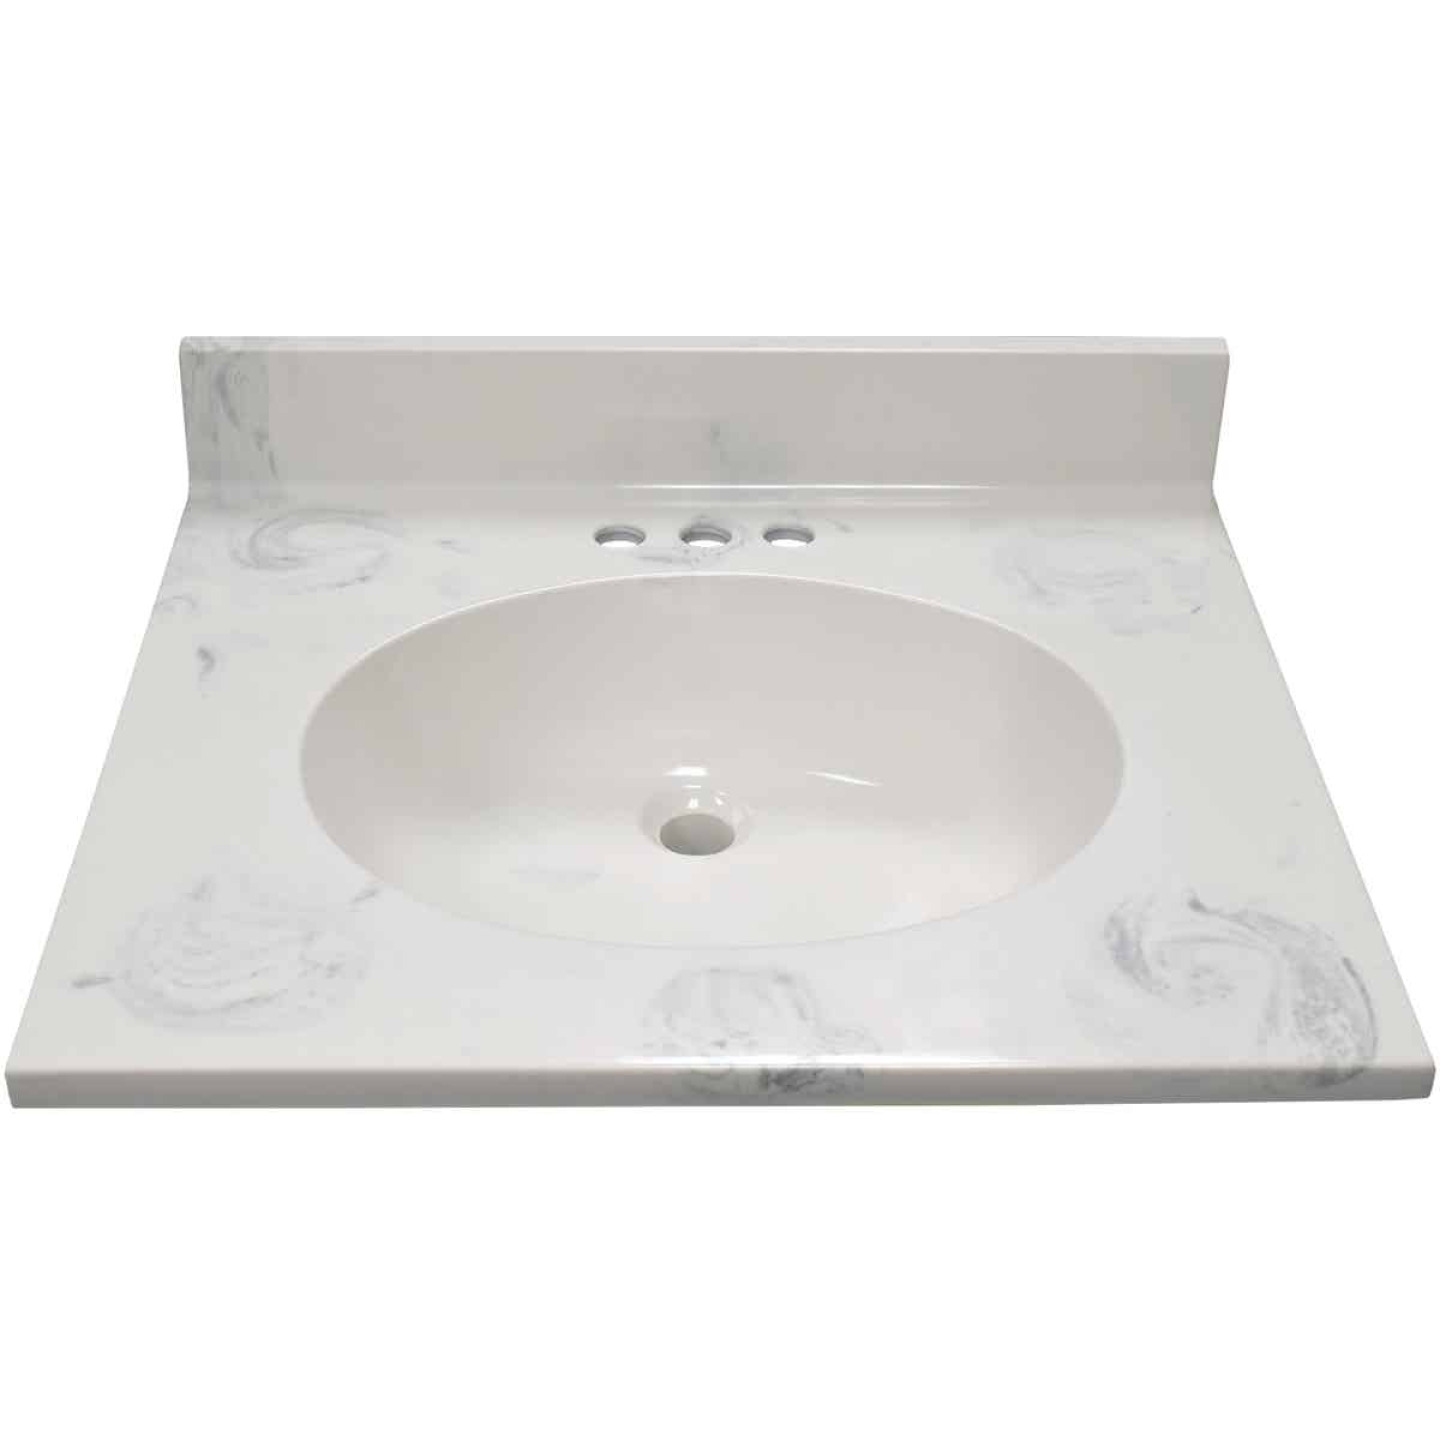 Modular Vanity Tops 25 In. W x 22 In. D Marbled Dove Gray Cultured Marble Flat Edge Vanity Top with Oval Bowl Image 2